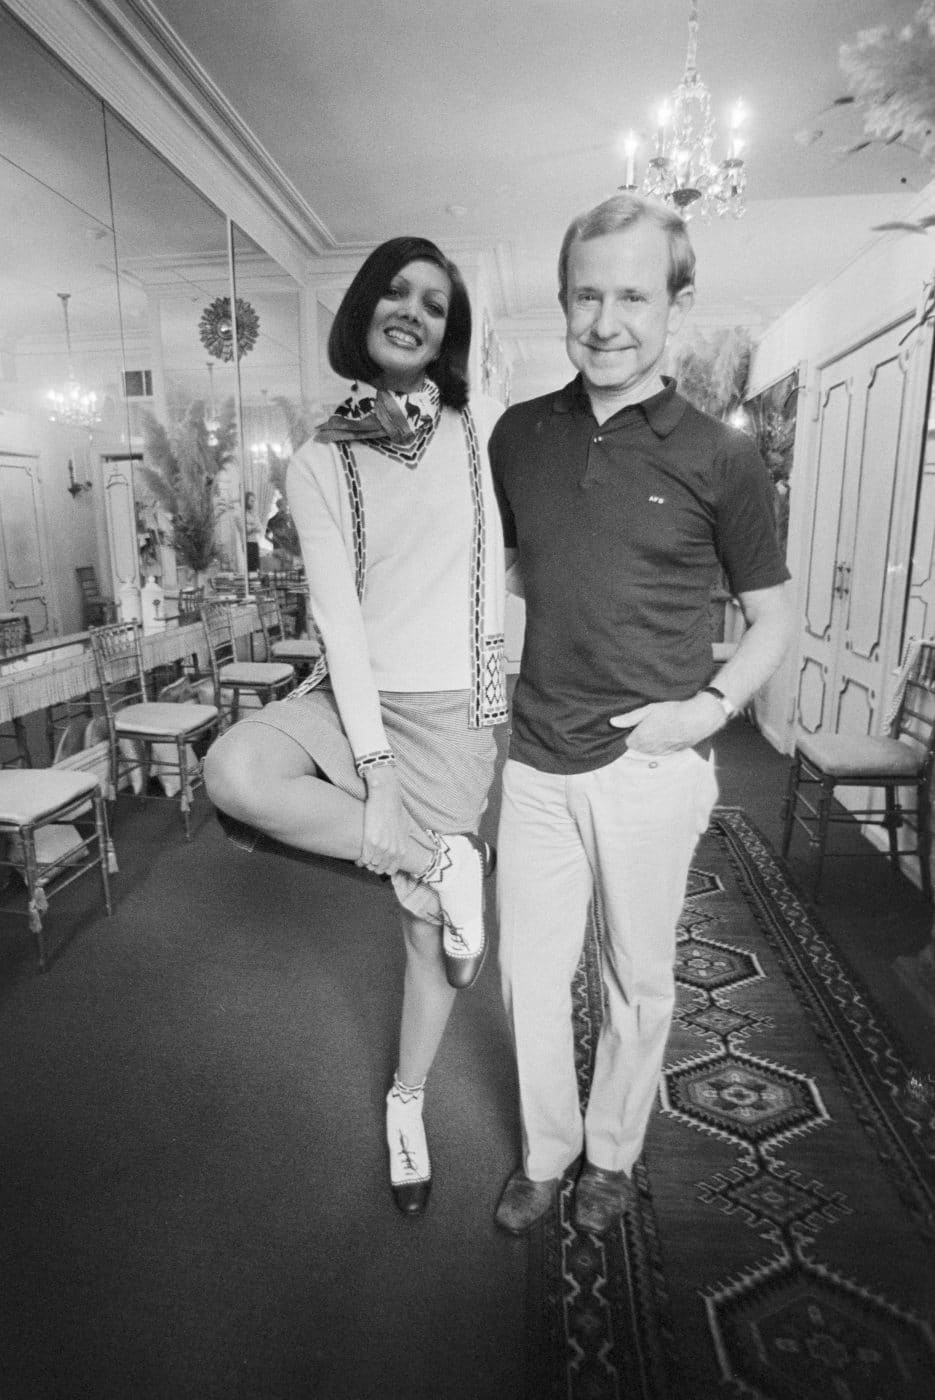 designer Adolfo, shown here with a model wearing one of his ensembles in 1979